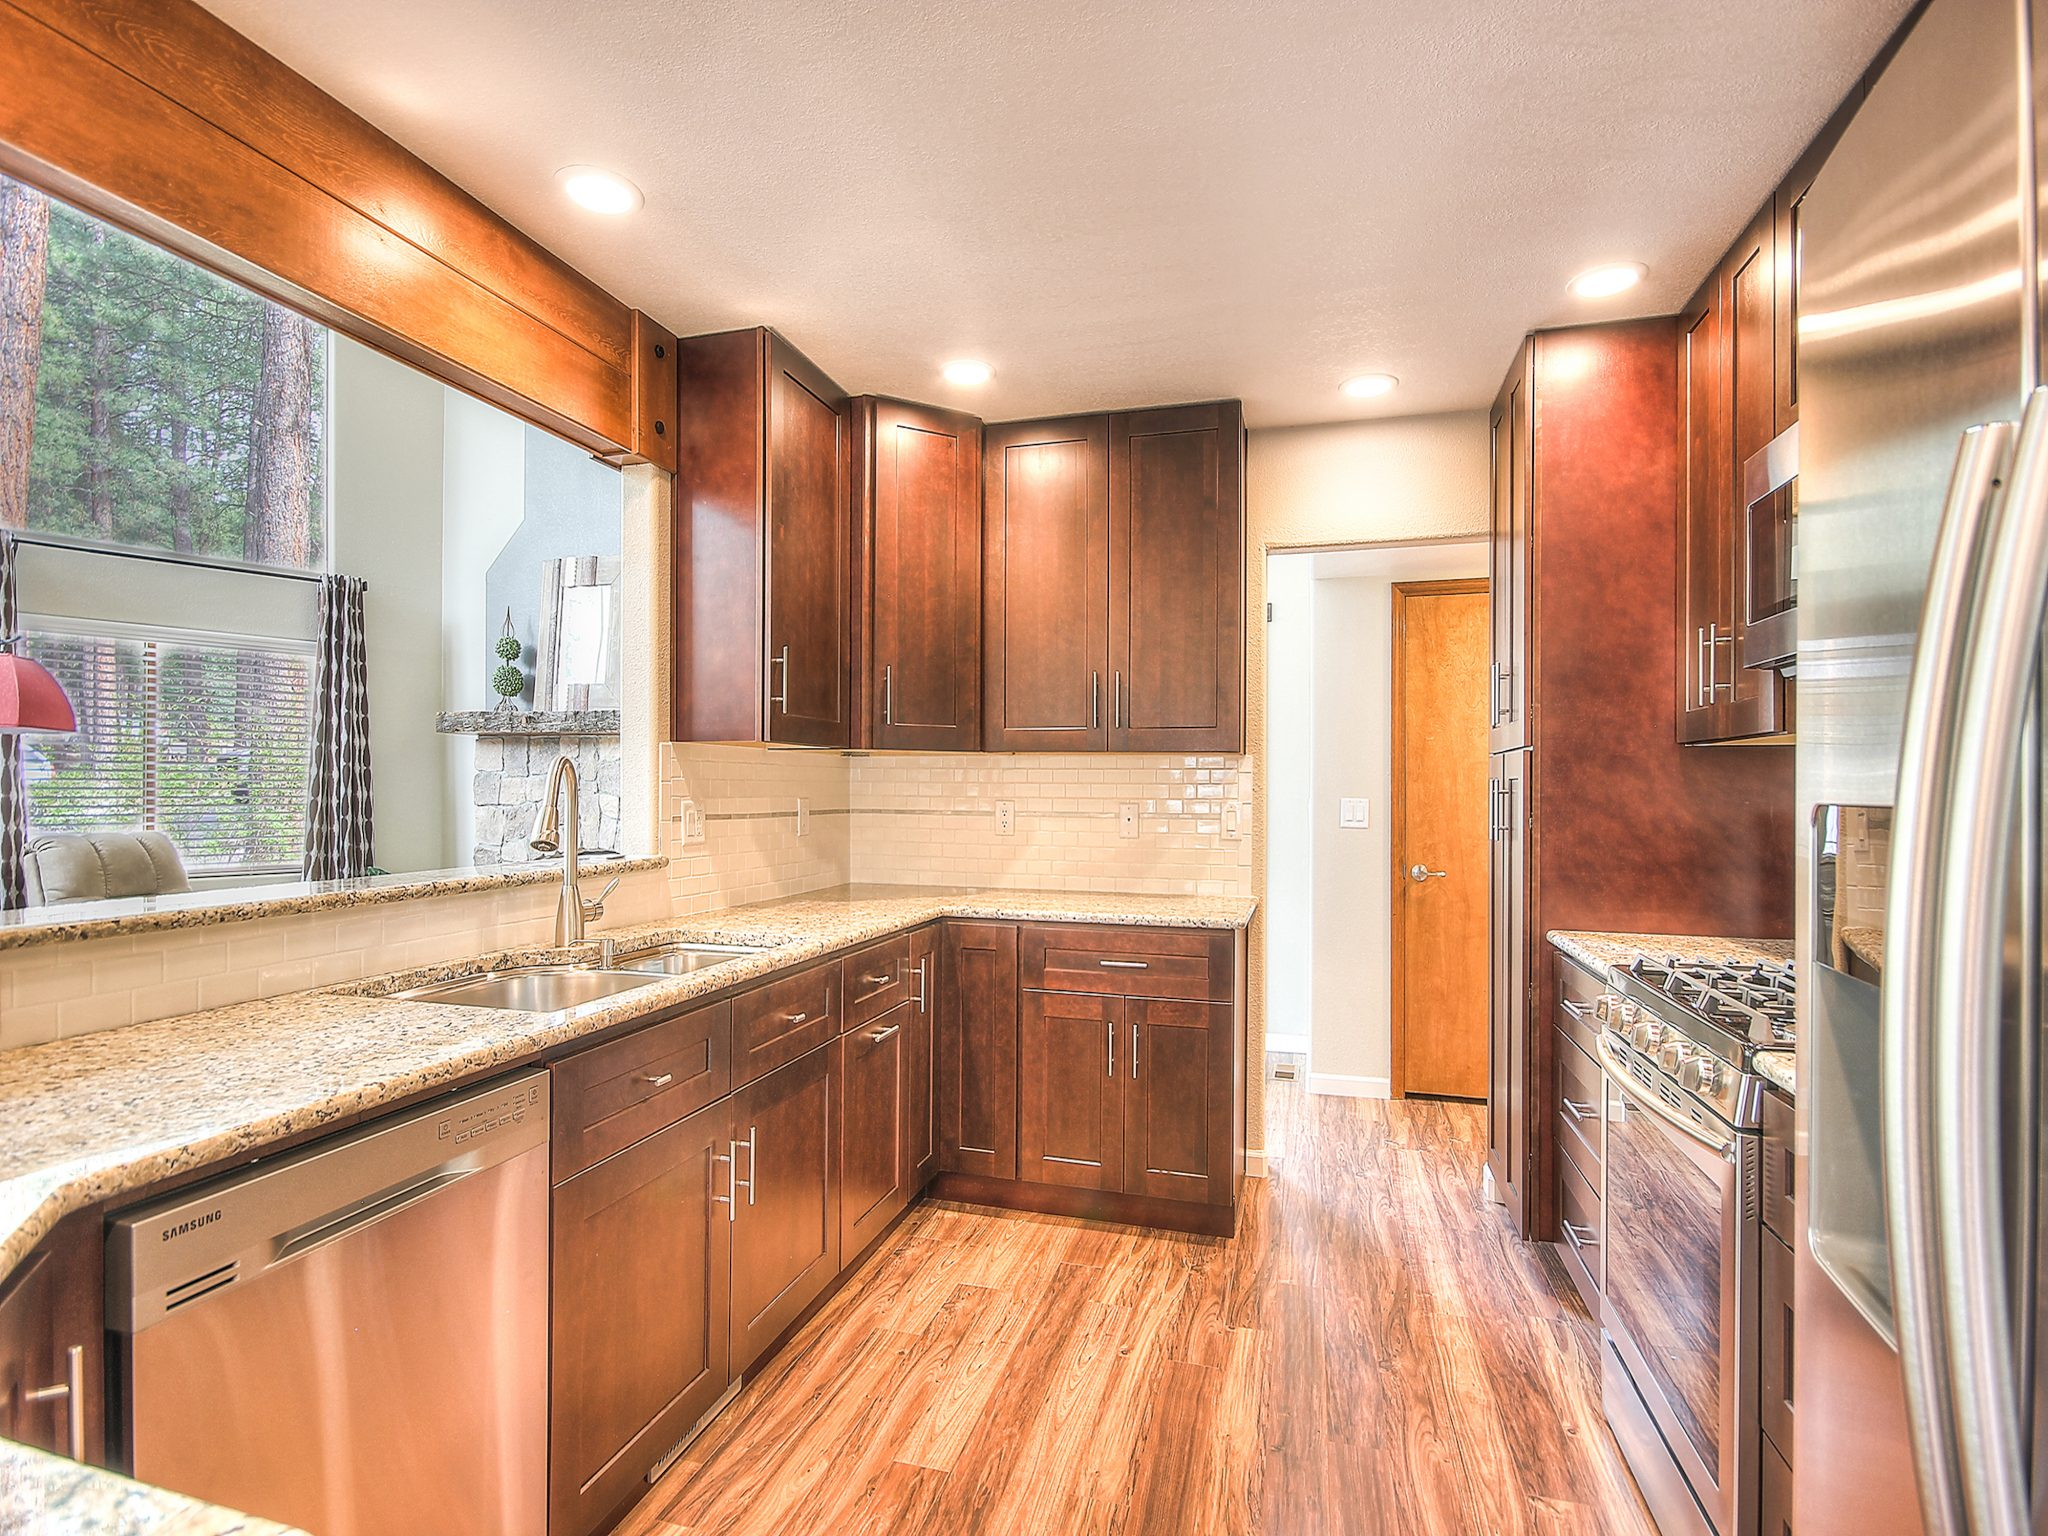 Interior shot of a newly remodeled kitchen with large wooden cabinets and white granite countertops